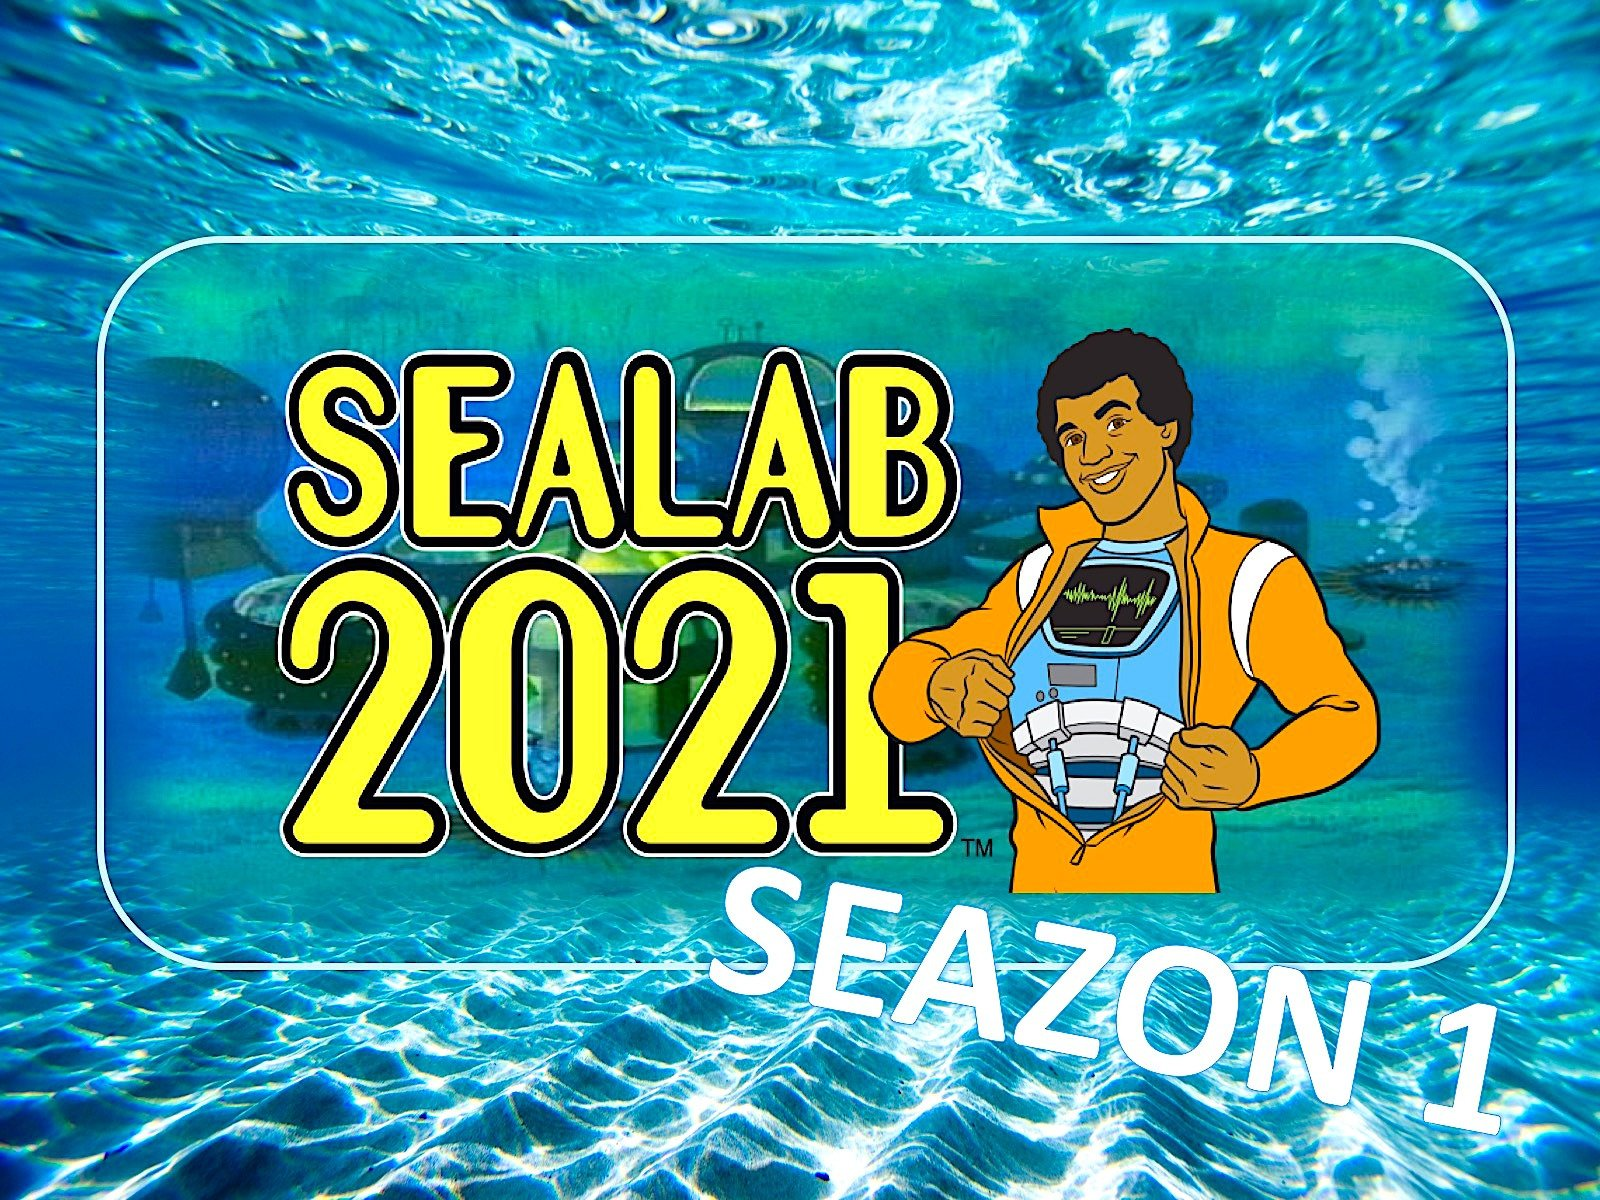 Sealab 2021 Seazon 1 - Season 1